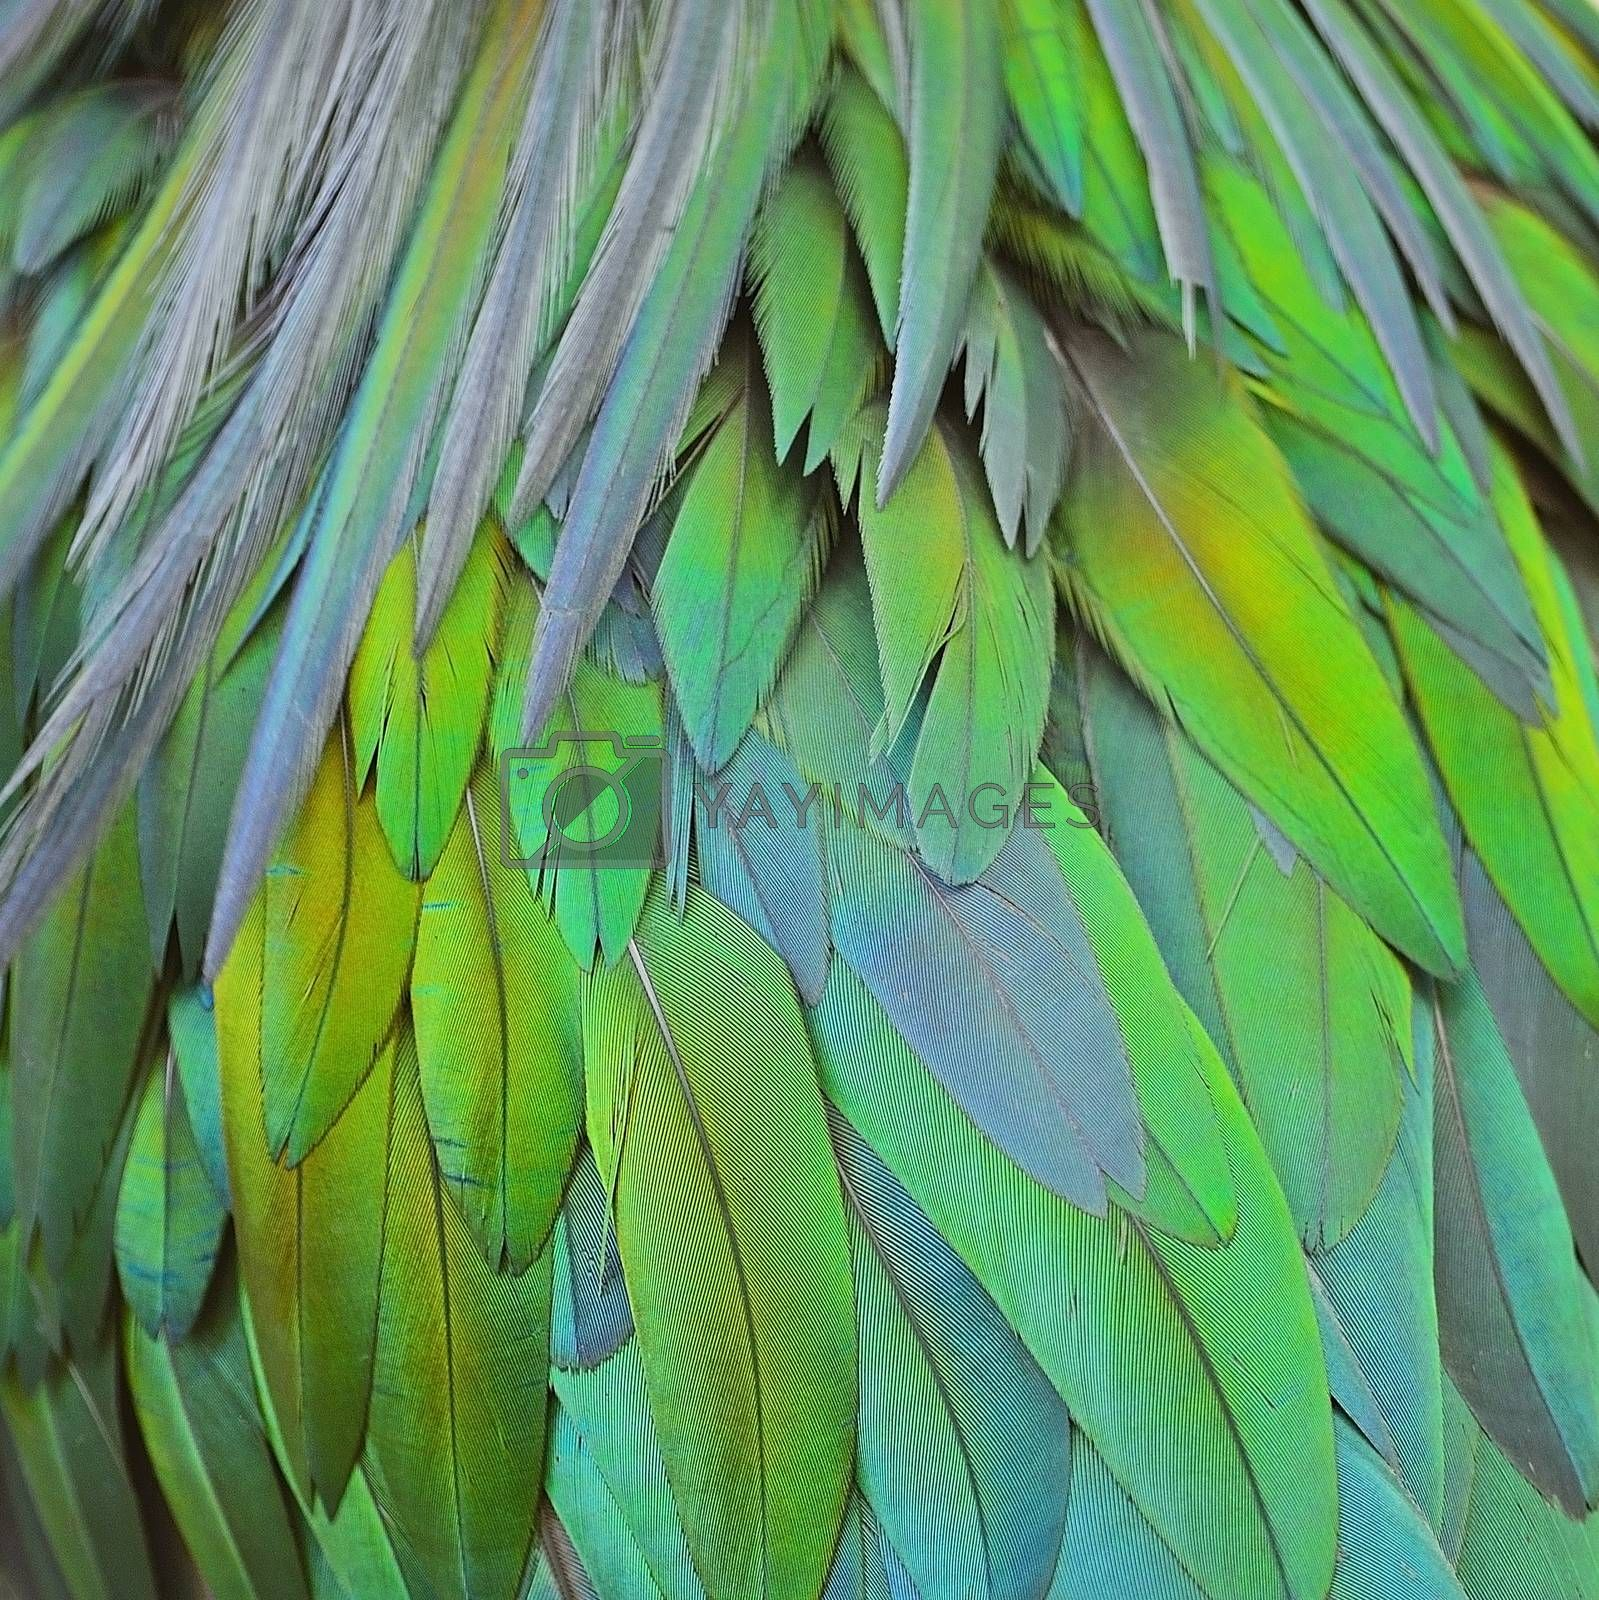 Royalty free image of Nicobar Pigeon feathers  by panuruangjan